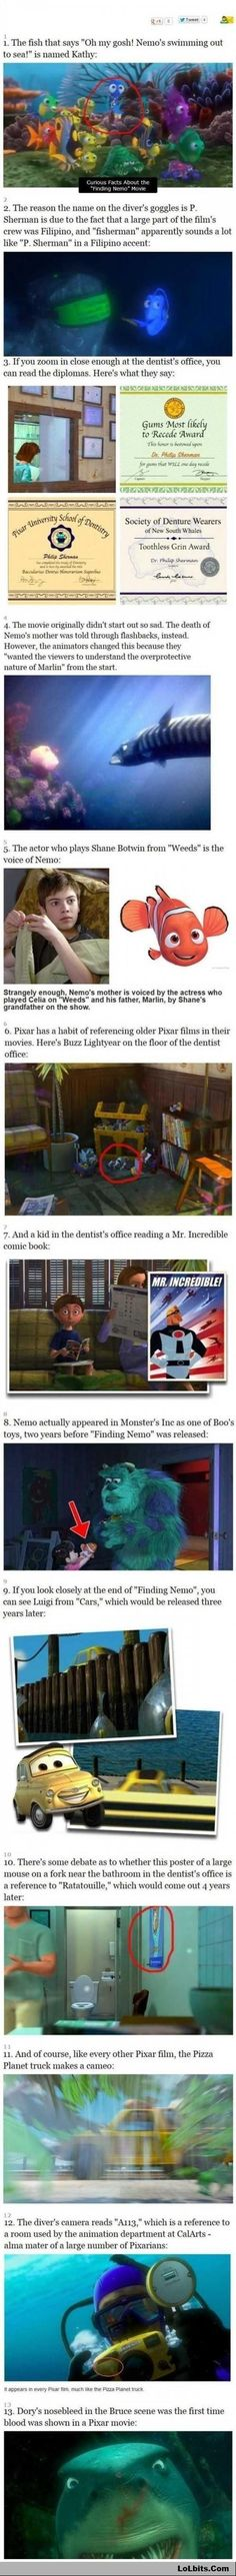 Facts About Finding Nemo Part 1